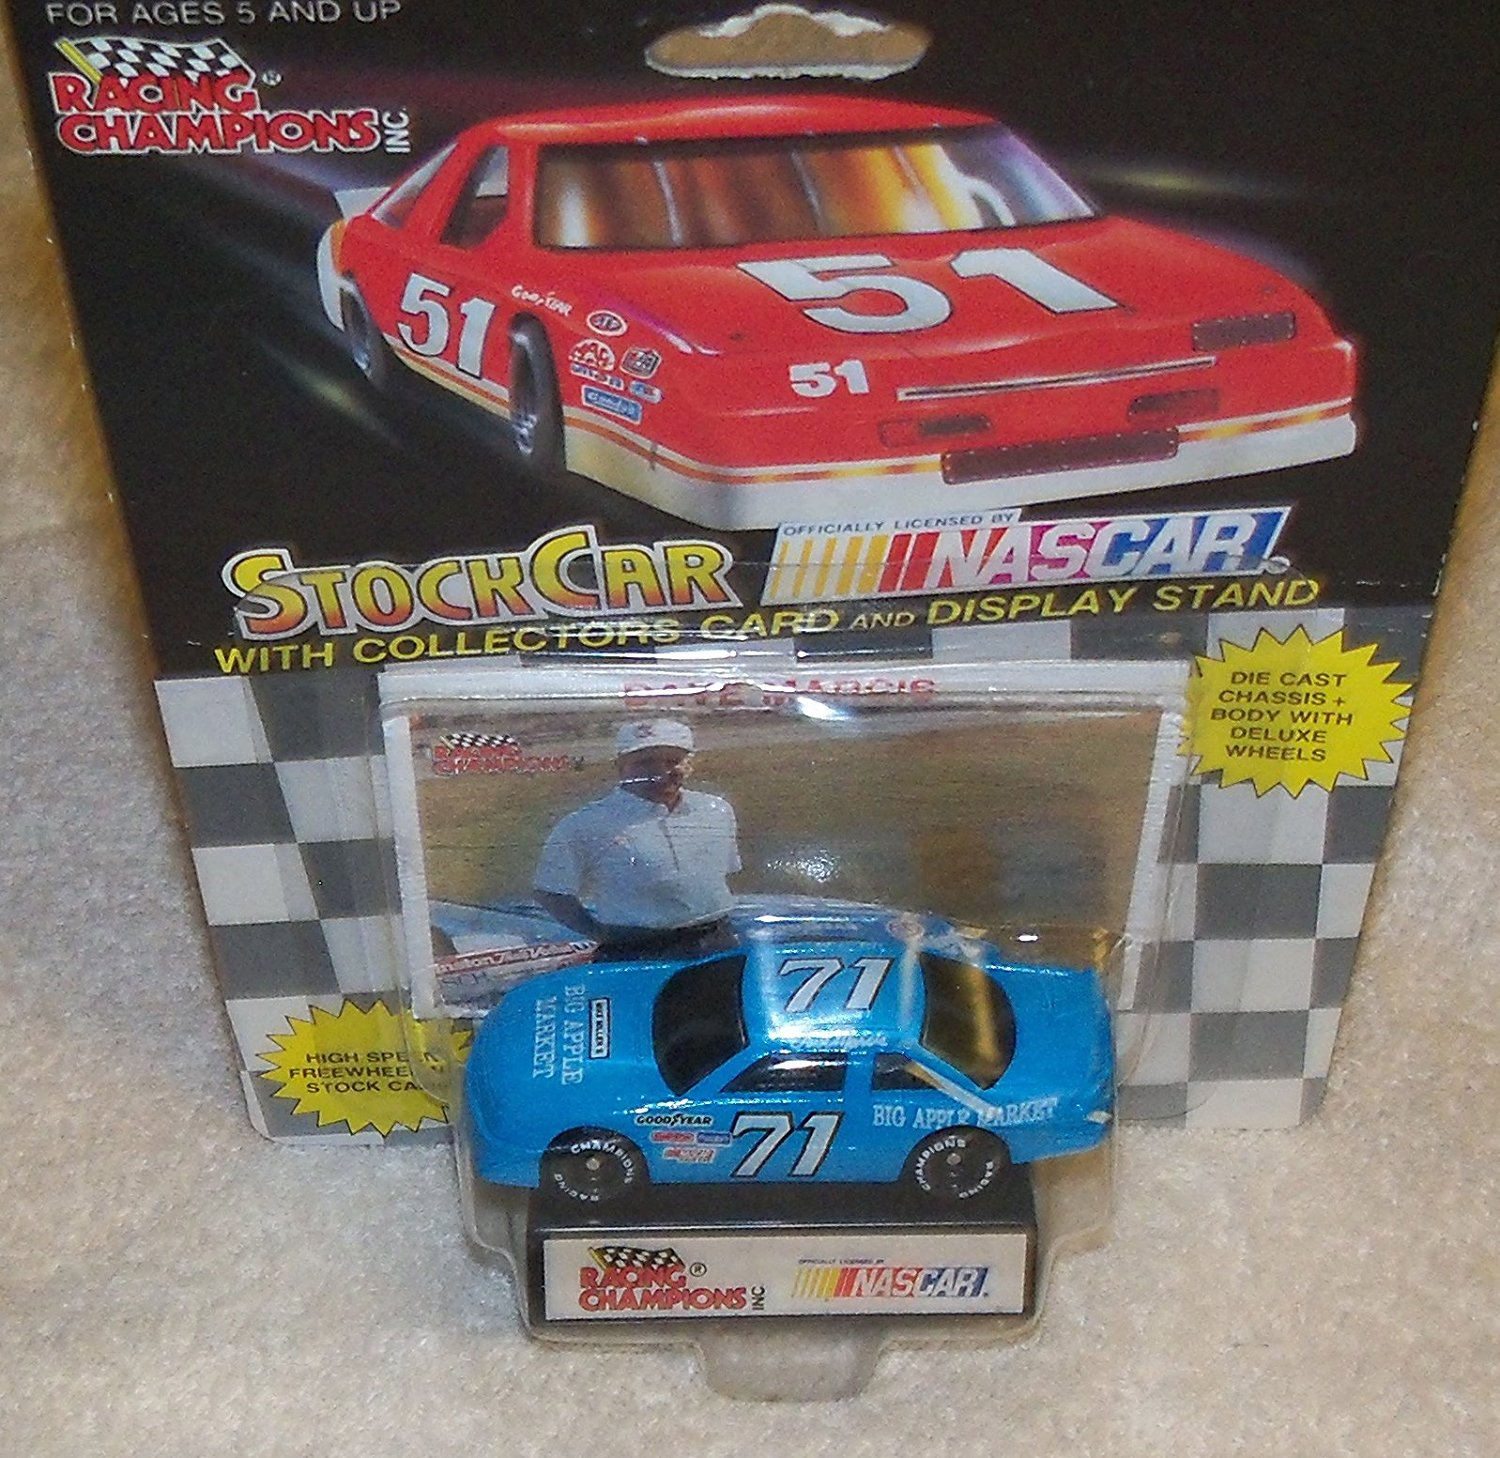 NASCAR #71 Dave Marcis Big Apple Markets Racing Team Stock Car With Driver's Collectors Card And Display Stand. Racing Champions Black Background Red Series 51 Car